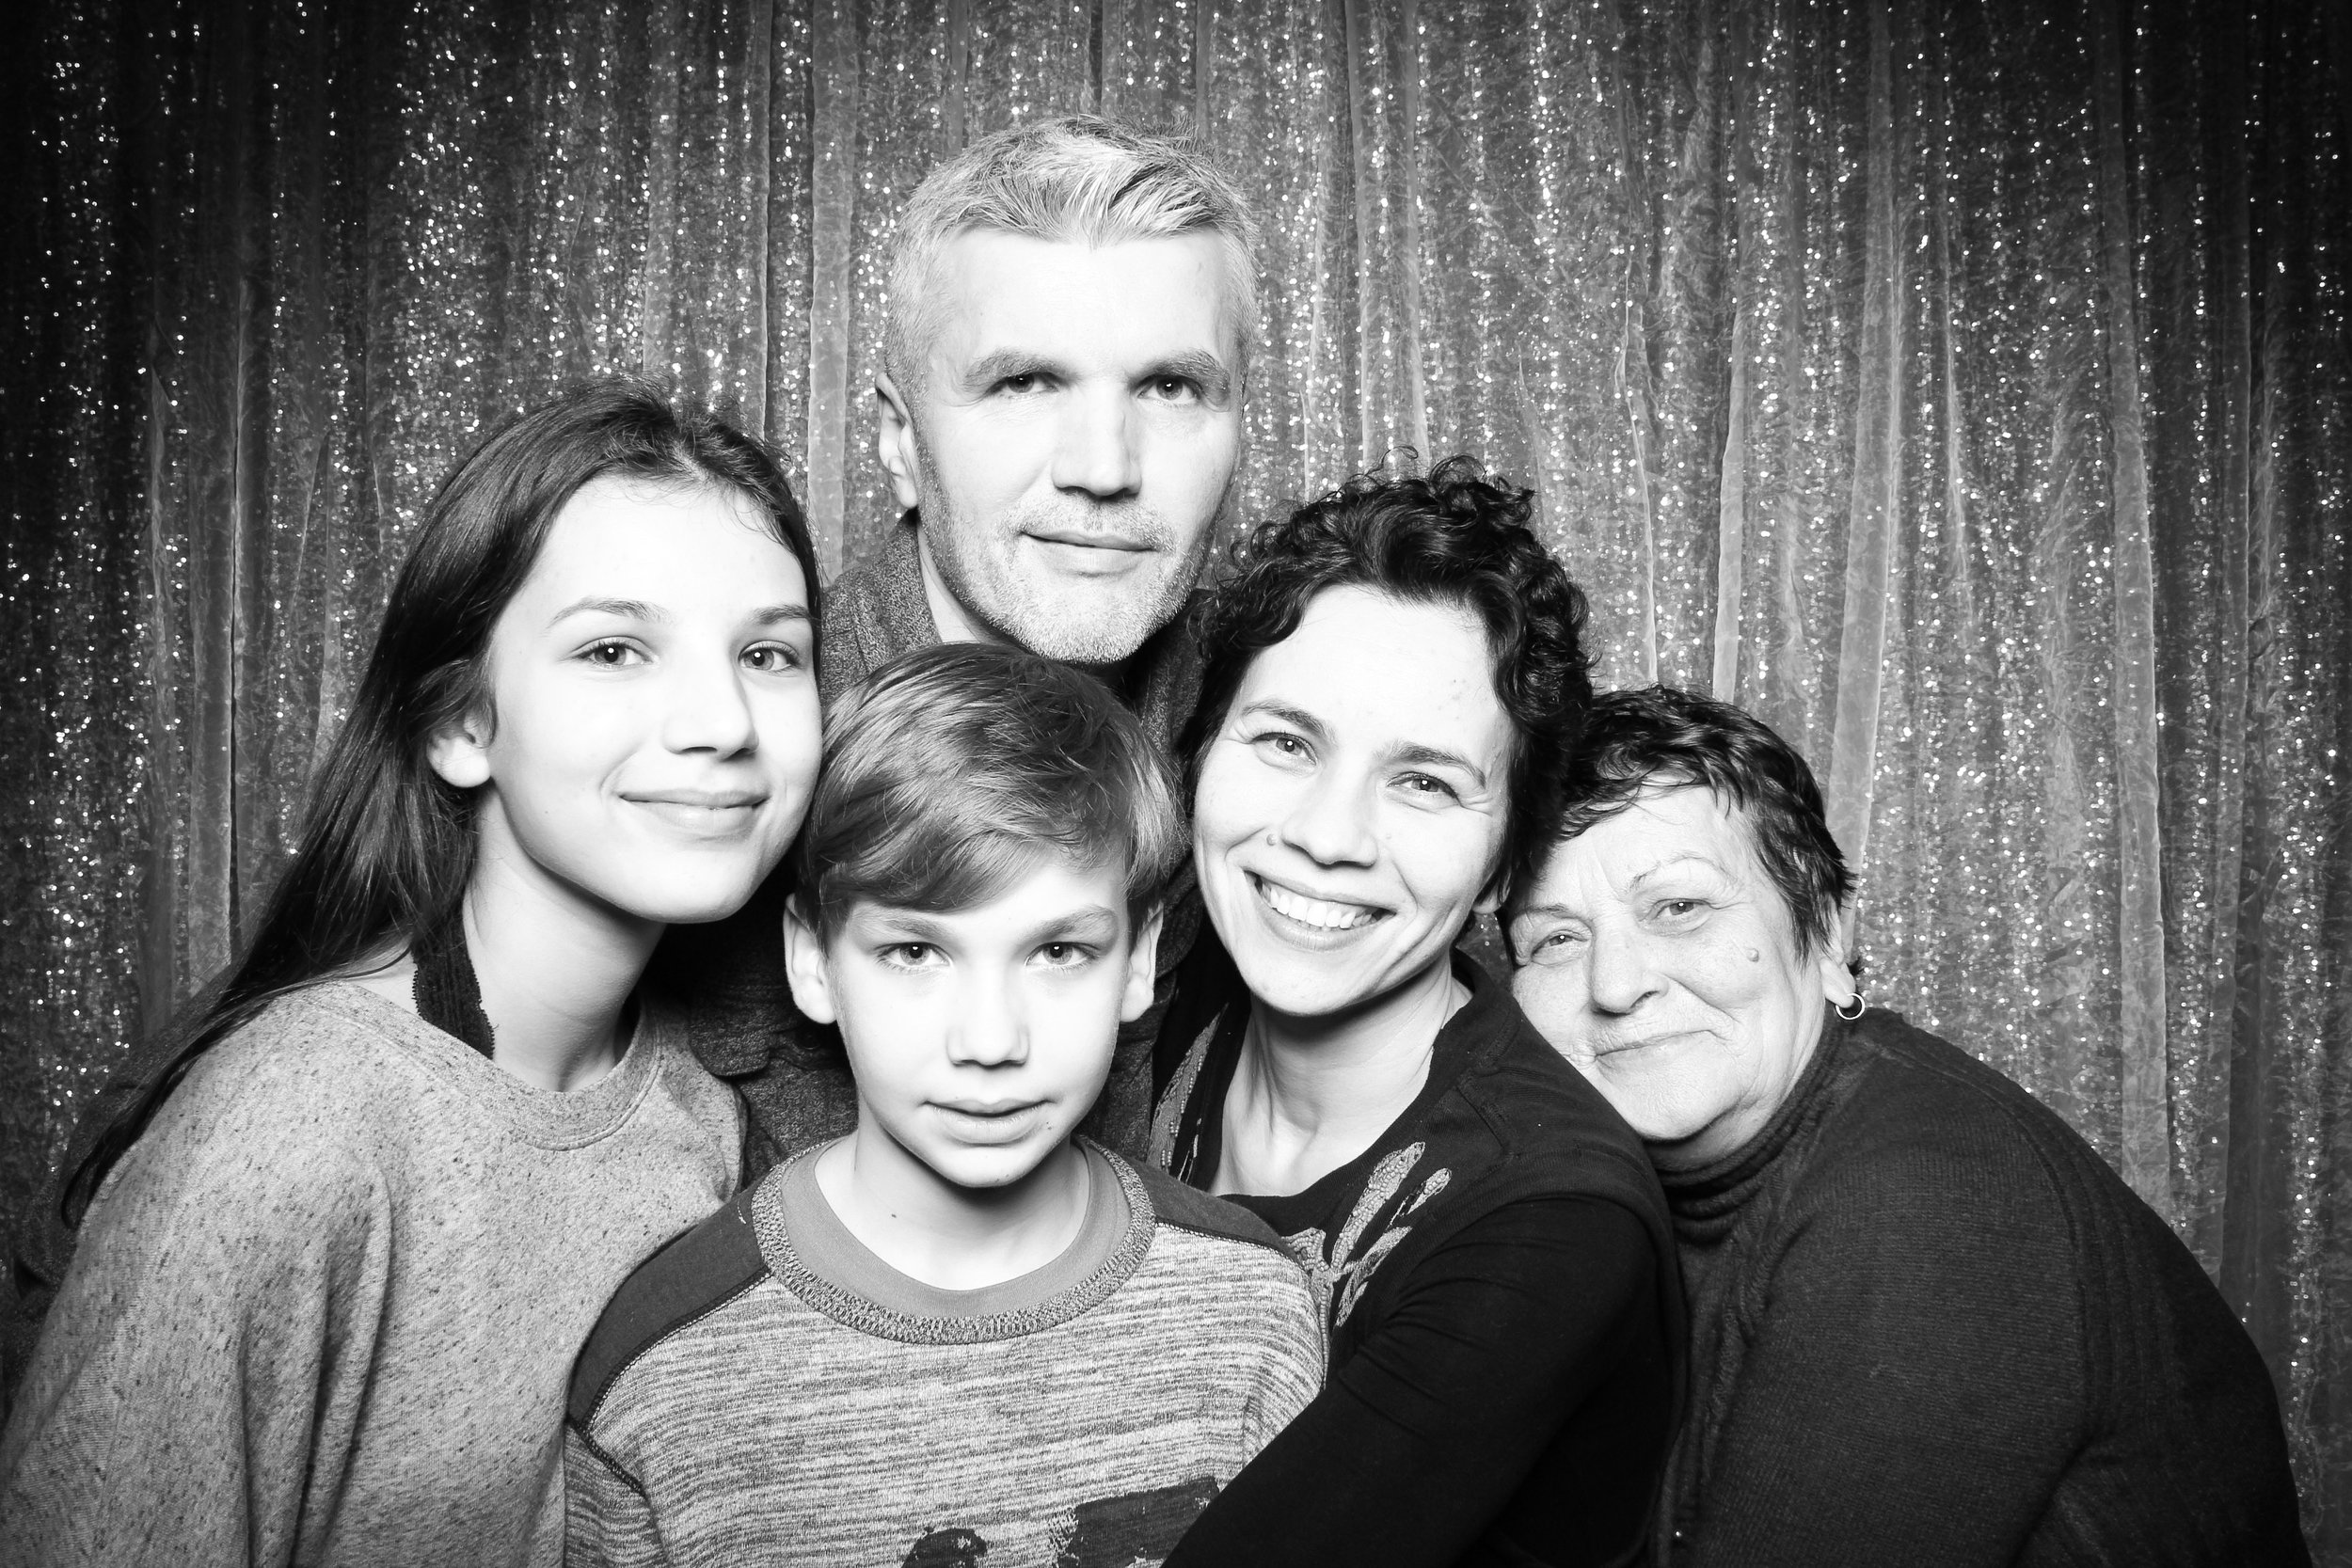 Chicago_Vintage_Wedding_Photobooth_Downers_Grove_38.jpg